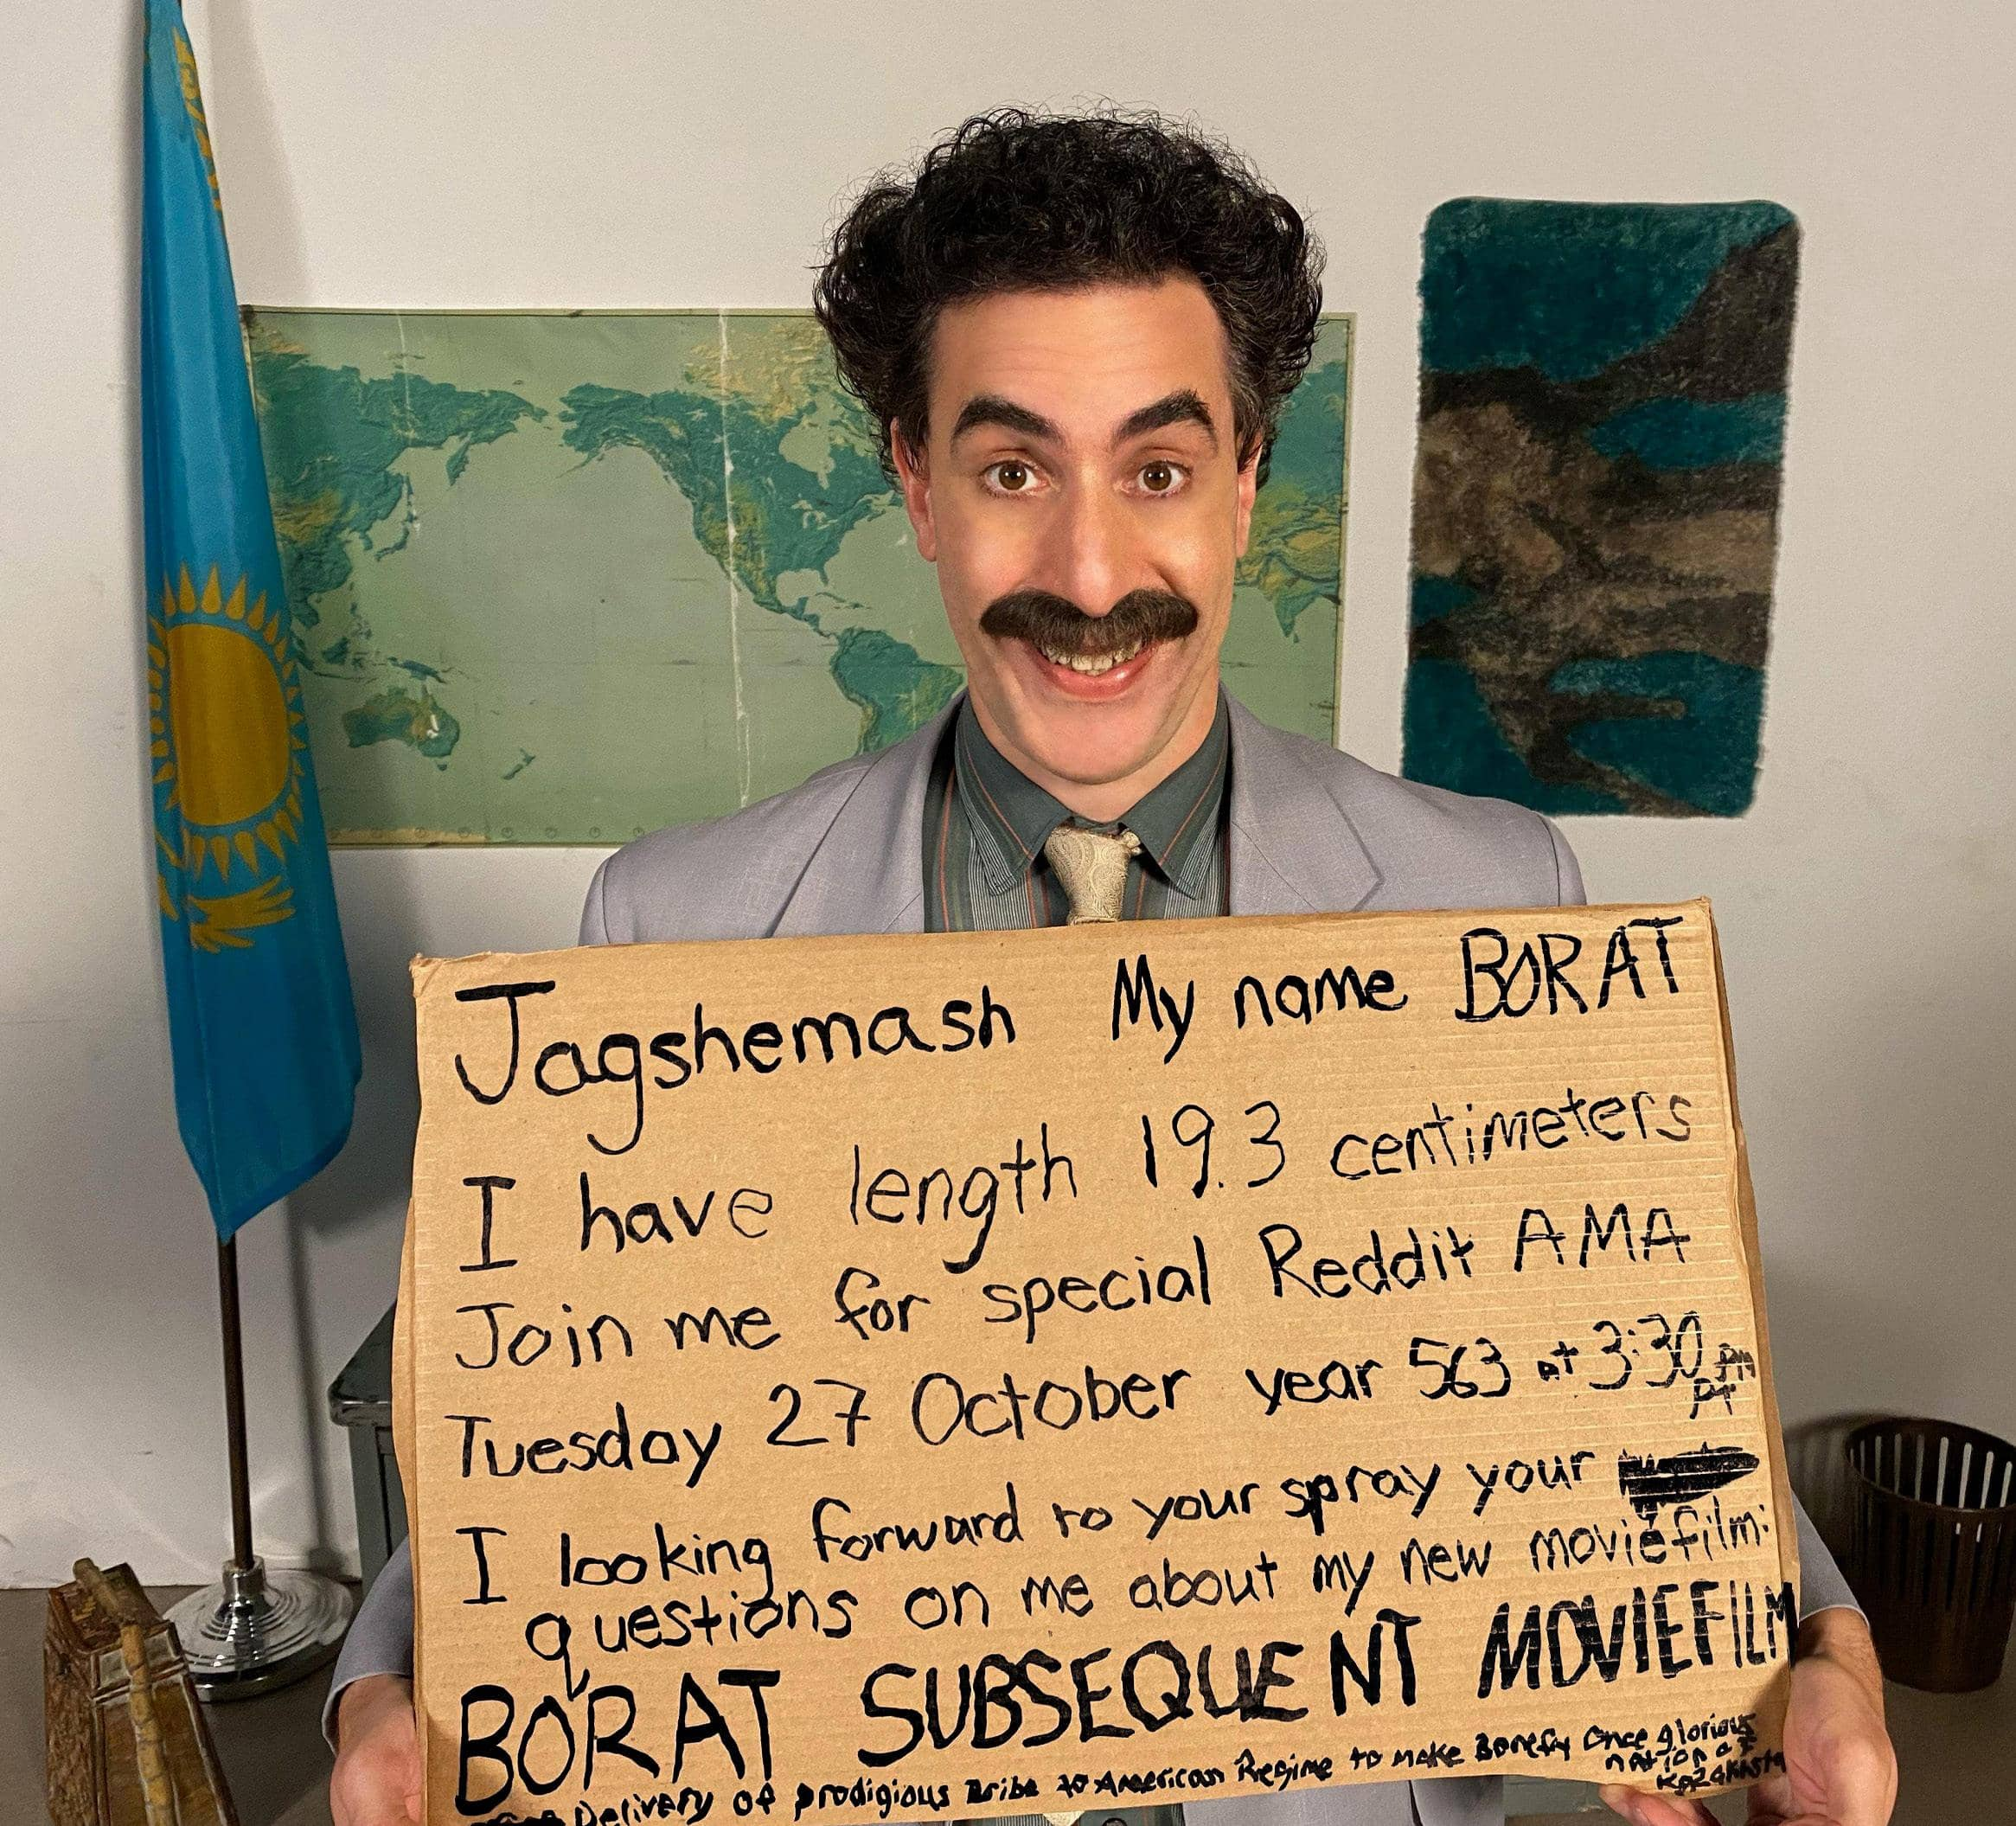 BORAT IS BACK, AND THIS TIME HE FITS RIGHT IN